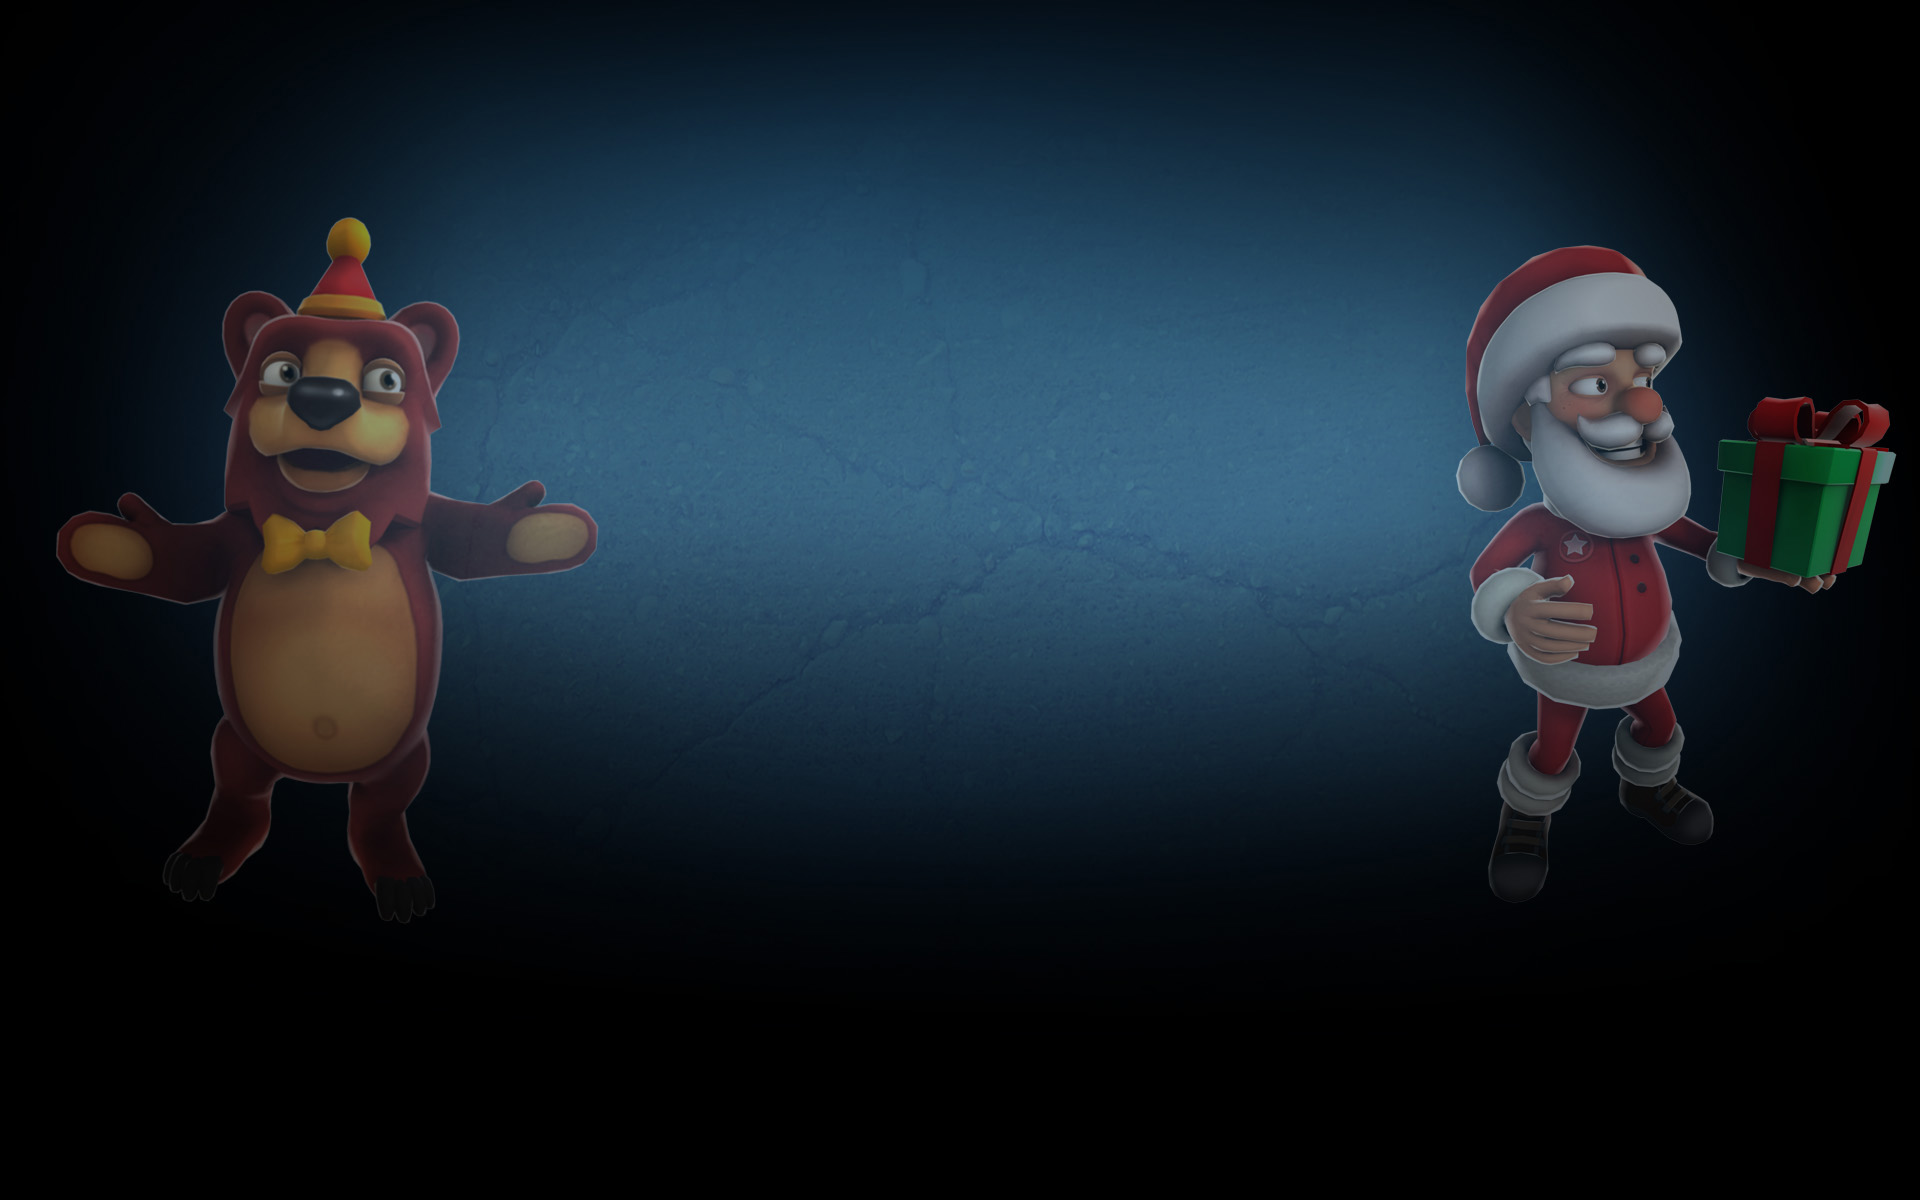 Prepare your Steam profile for Christmas and help finding more ...